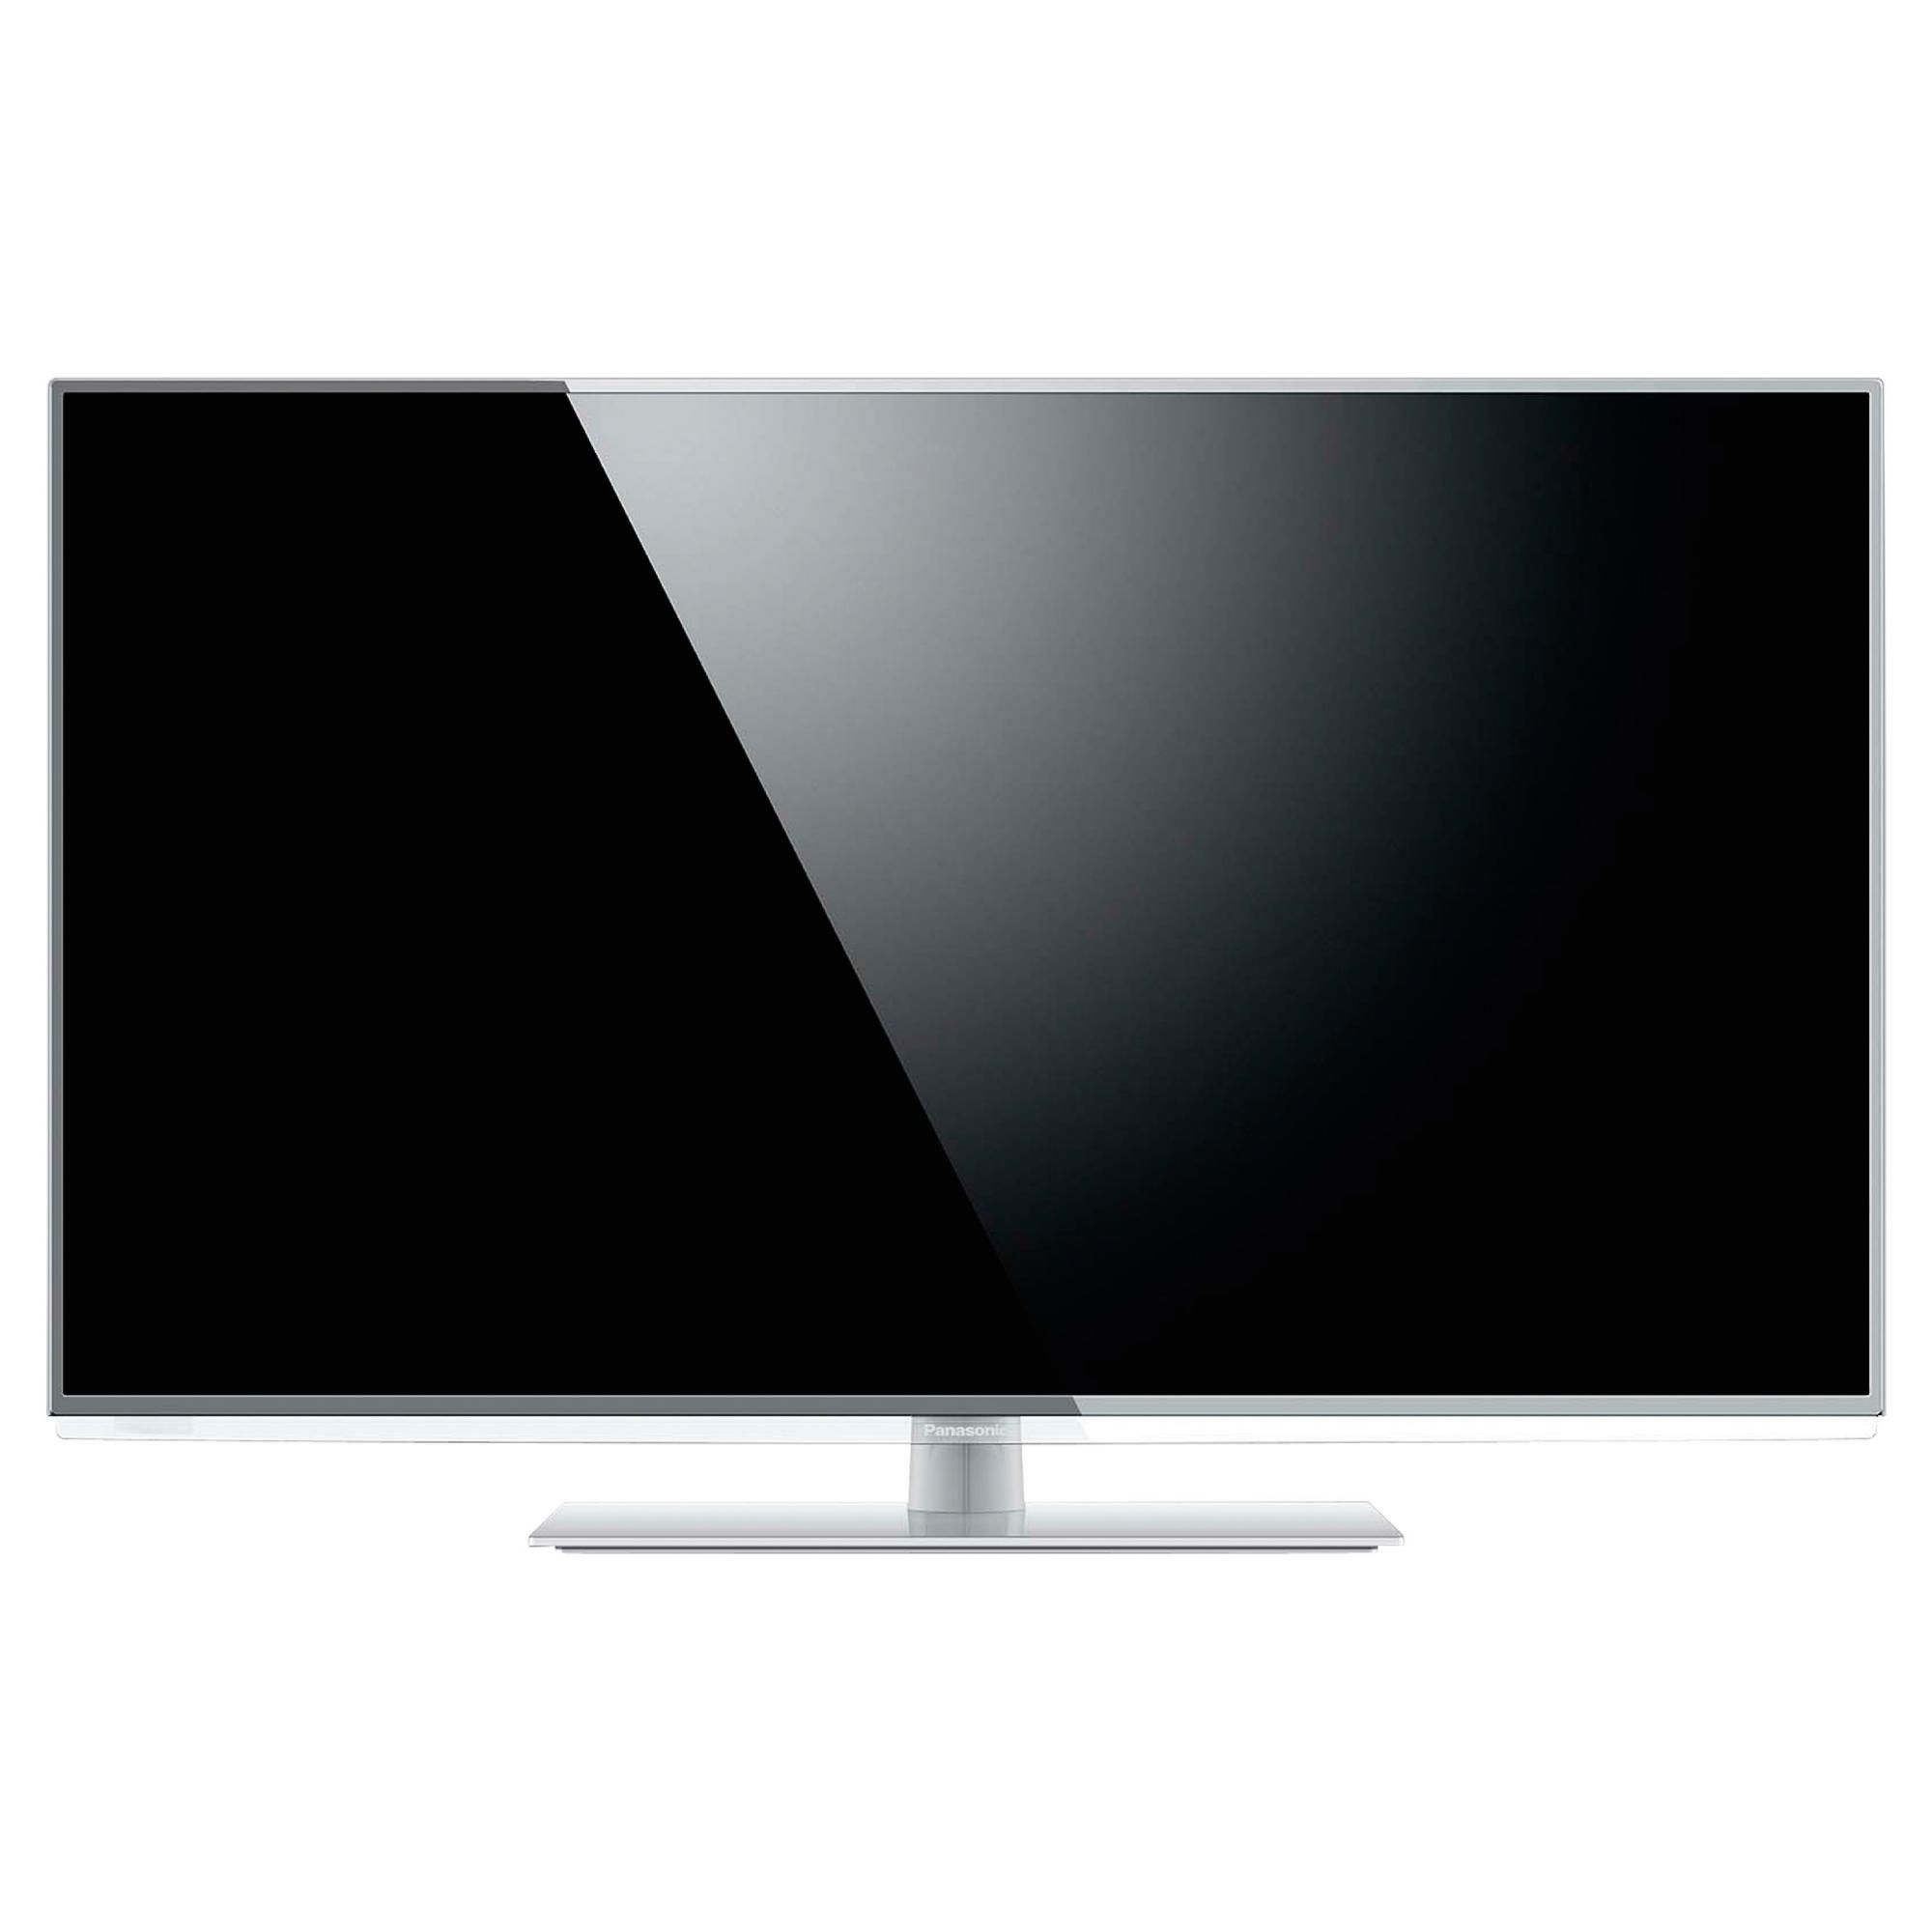 Телевизор Panasonic Smart Viera Tx Lr42e6 Инструкция